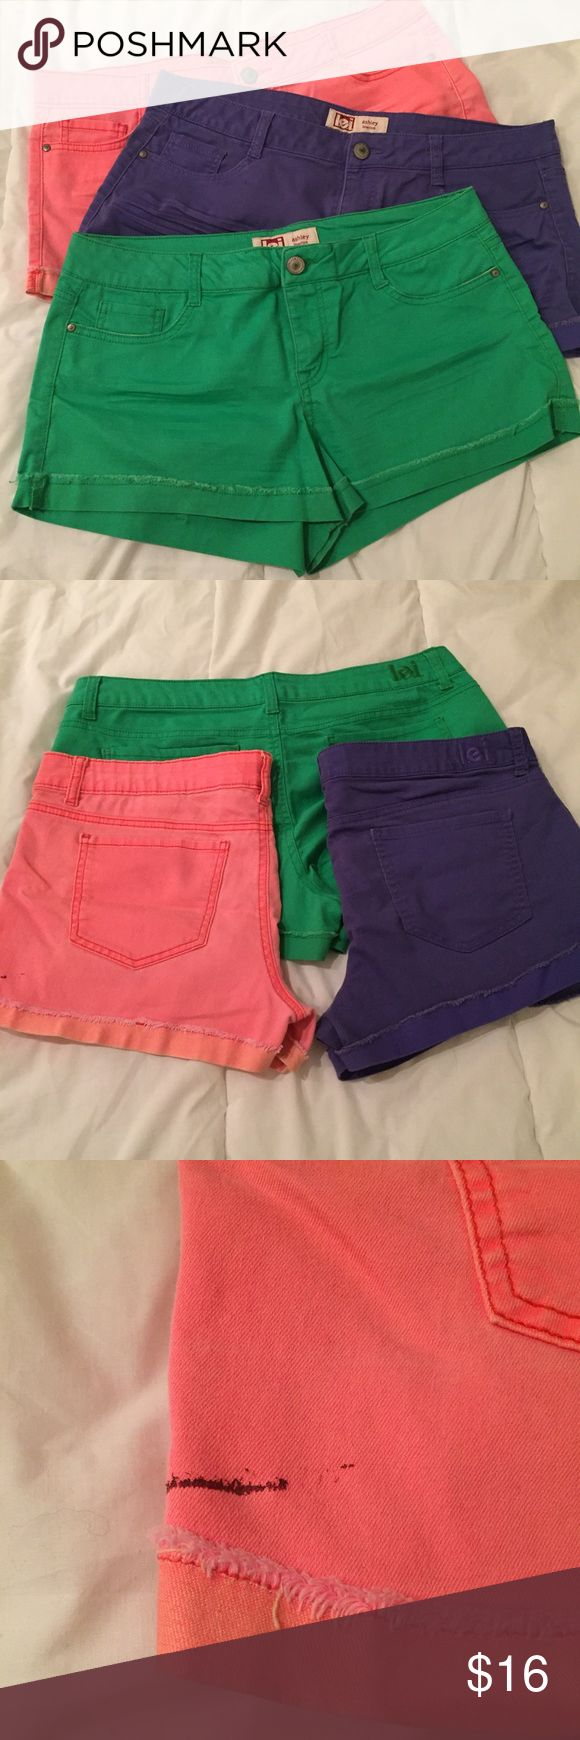 Set of 3 adorable bright shorts! Comfy and cute! Super cute and comfy shorts with rolled cuffs and stretch! Great for the beach or bikes in the park! All 3 have been worn but are in good shape.. the pink pair has a paint stain at the bottom as shown in one of the photos (might come out with a little effort). Great opportunity to pick up some fun shorts for spring break! lei Shorts